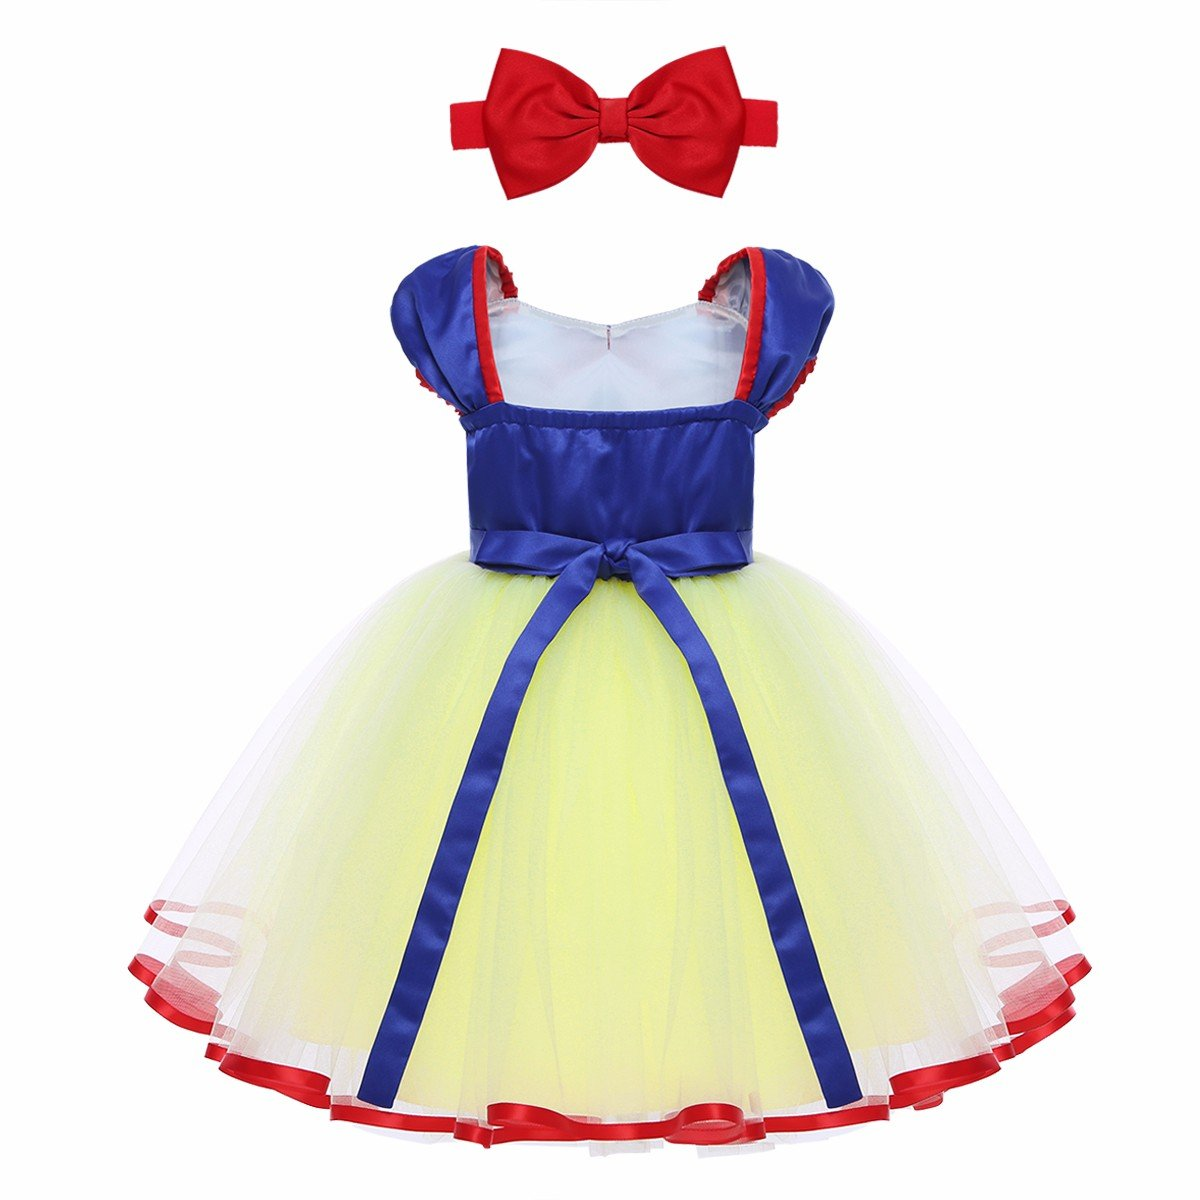 iEFiEL Toddler Baby Girls Princess Costume Holiday Birthday Party Fairy Dress up with Headband